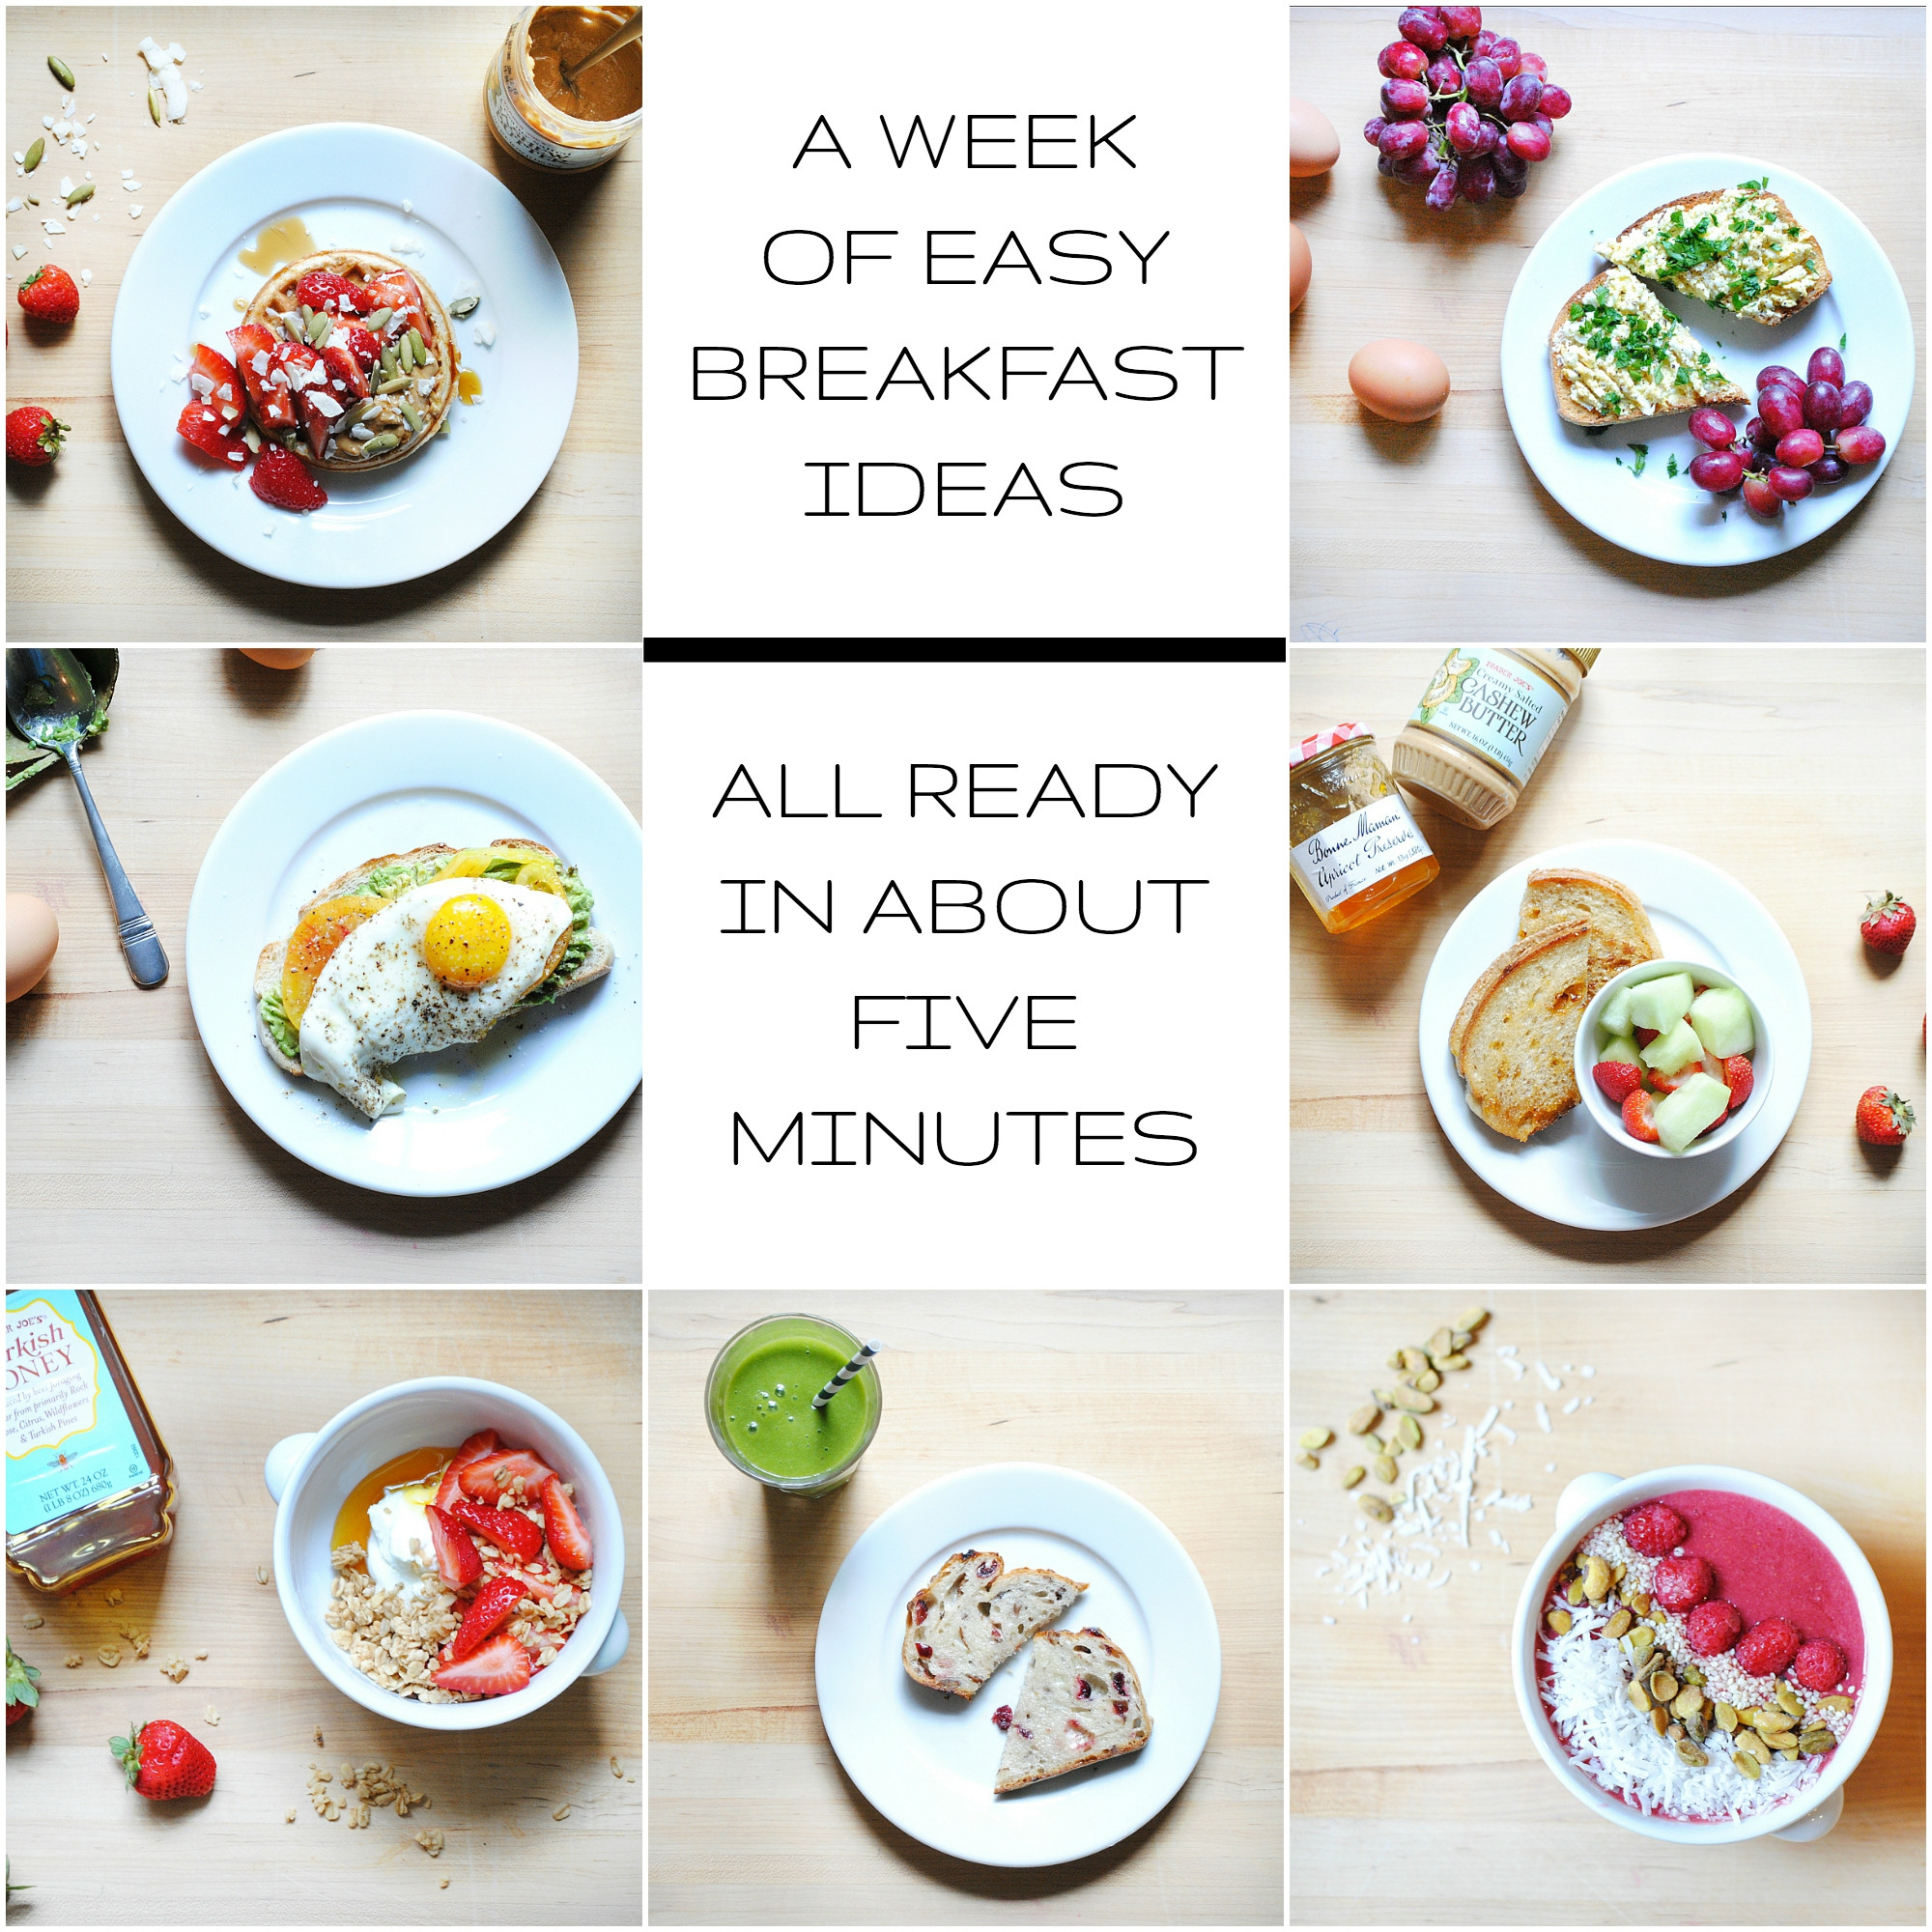 Healthy And Quick Breakfast  A Week of Healthy Easy Breakfast Ideas All Ready in